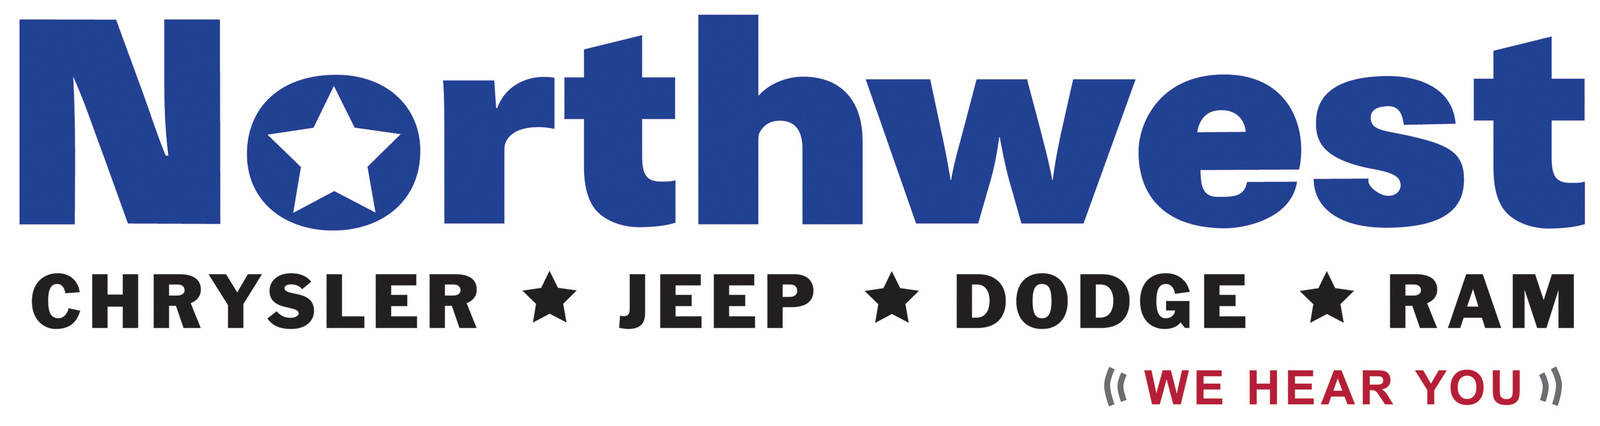 Charming Northwest Chrysler Jeep Dodge   Houston, TX: Read Consumer Reviews, Browse  Used And New Cars For Sale